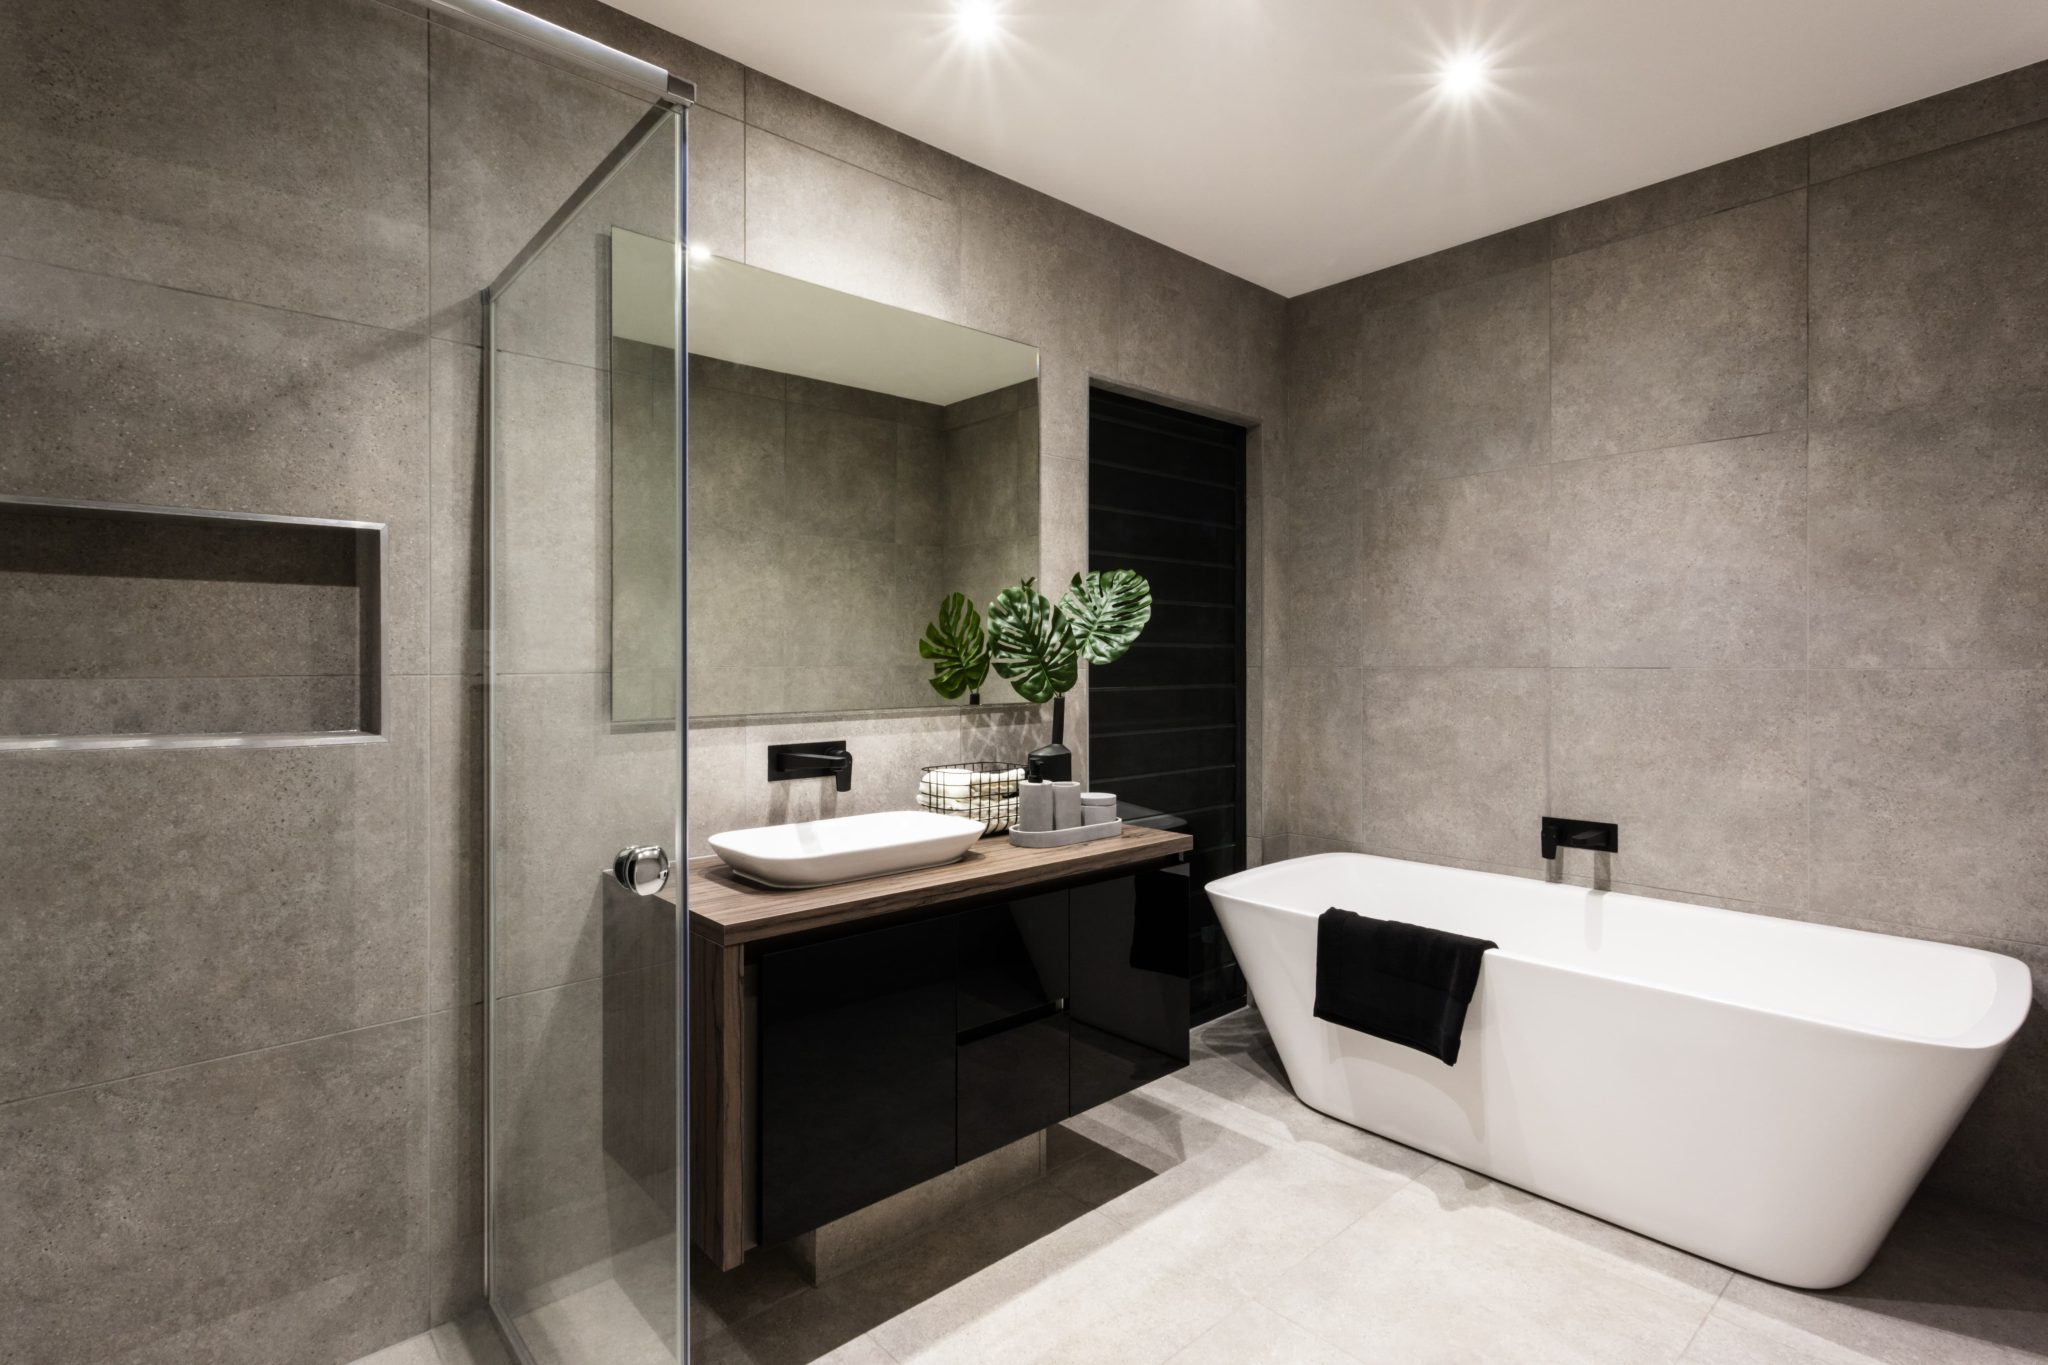 6 Things to Consider Before Remodeling Your Bathroom